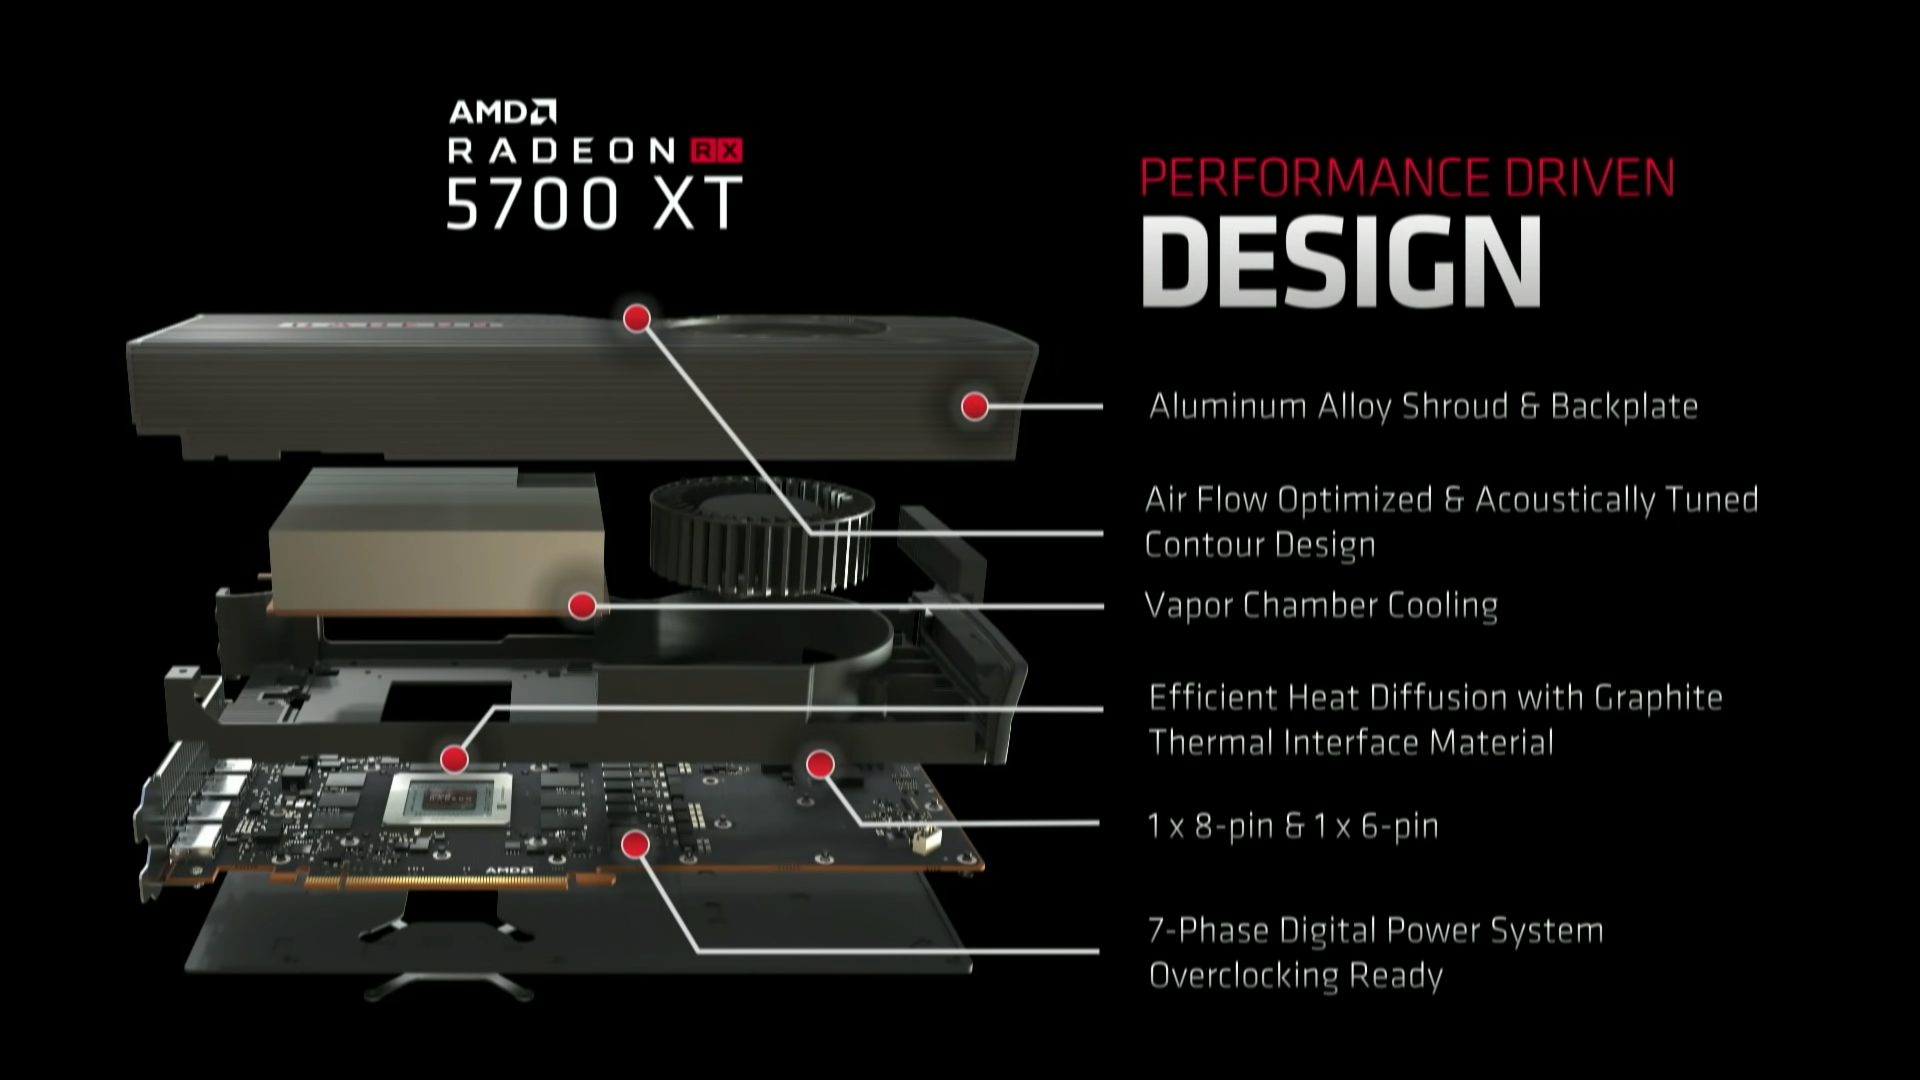 Amd Launches Navi As The 449 Radeon Rx 5700 Xt Ars Technica